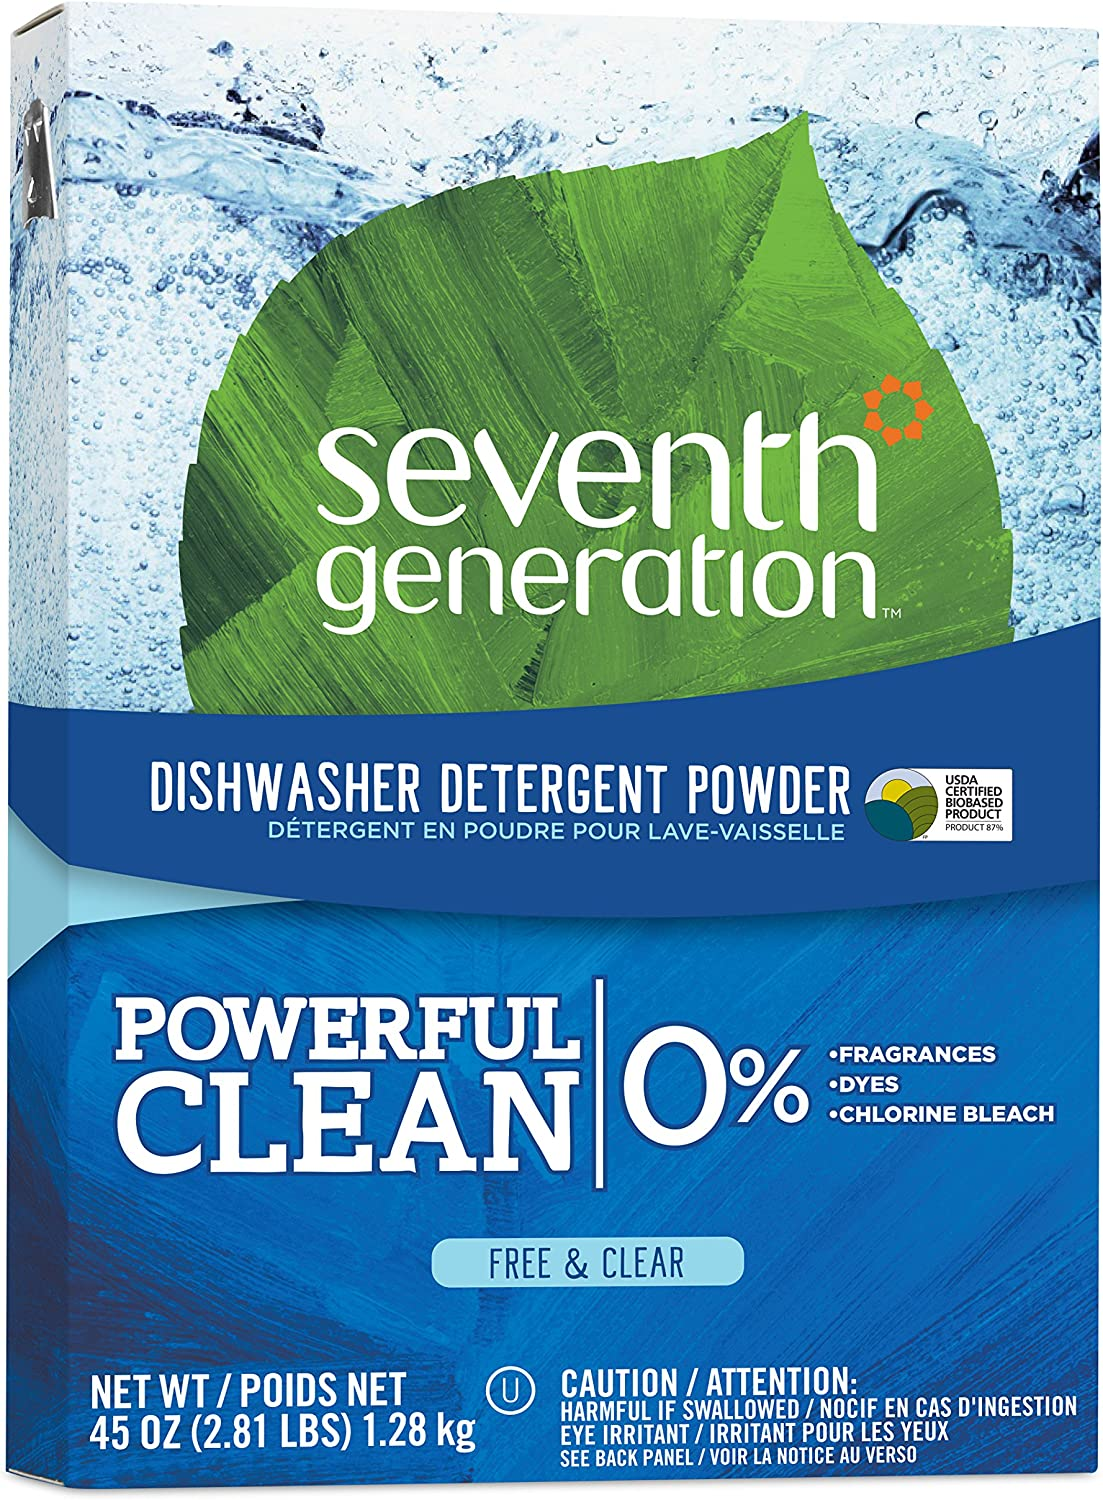 Seventh Generation Dishwasher Detergent Powder, Free & Clear, 45 oz